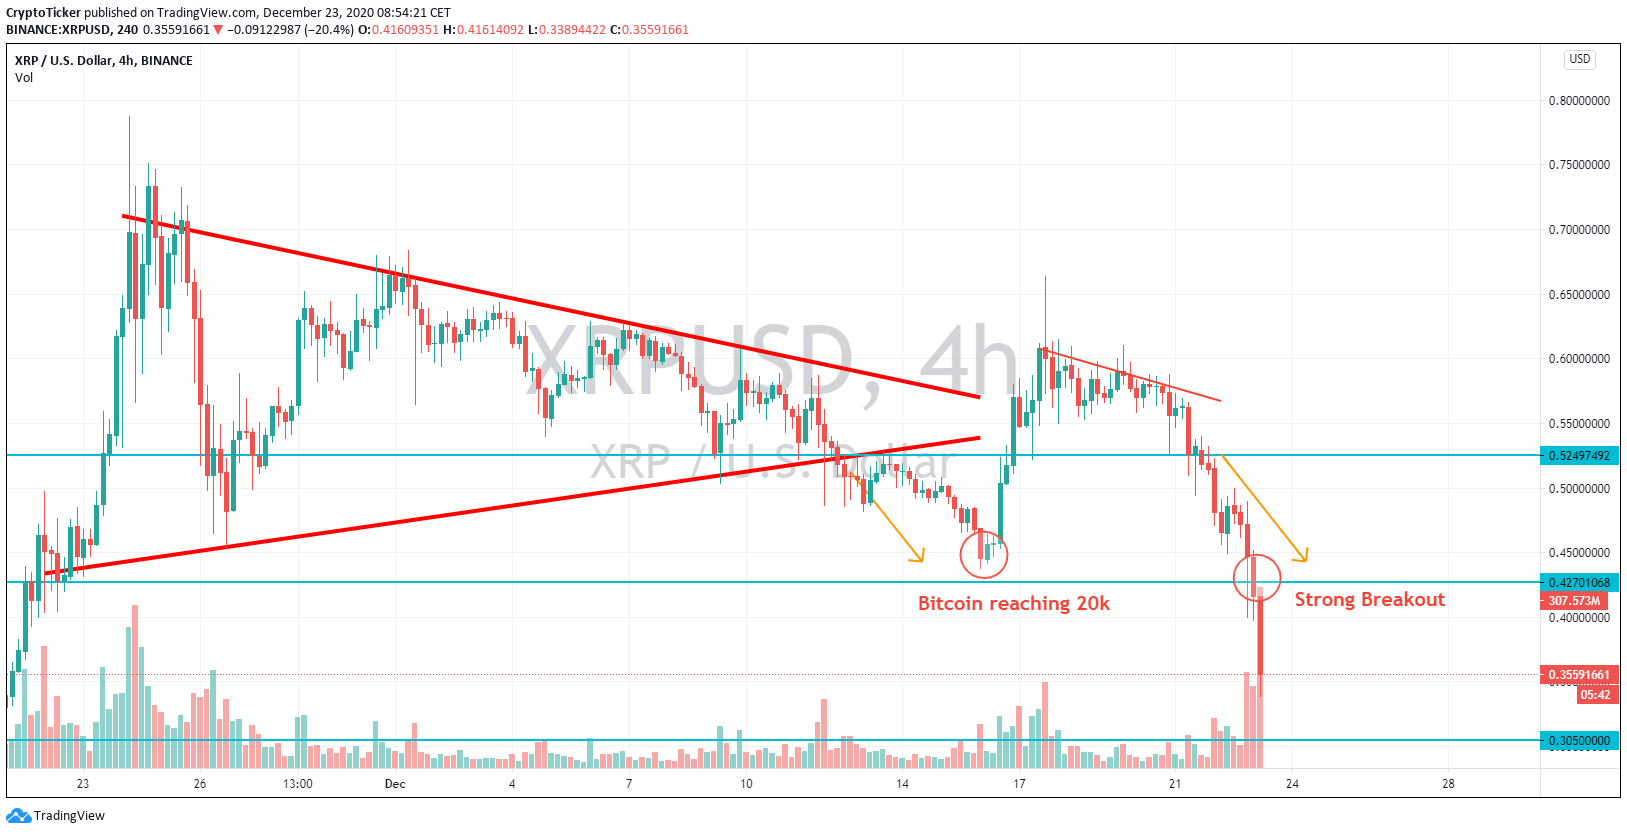 XRP/USD 4-Hours chart, XRP price broke through a strong support area of USD 42 cents